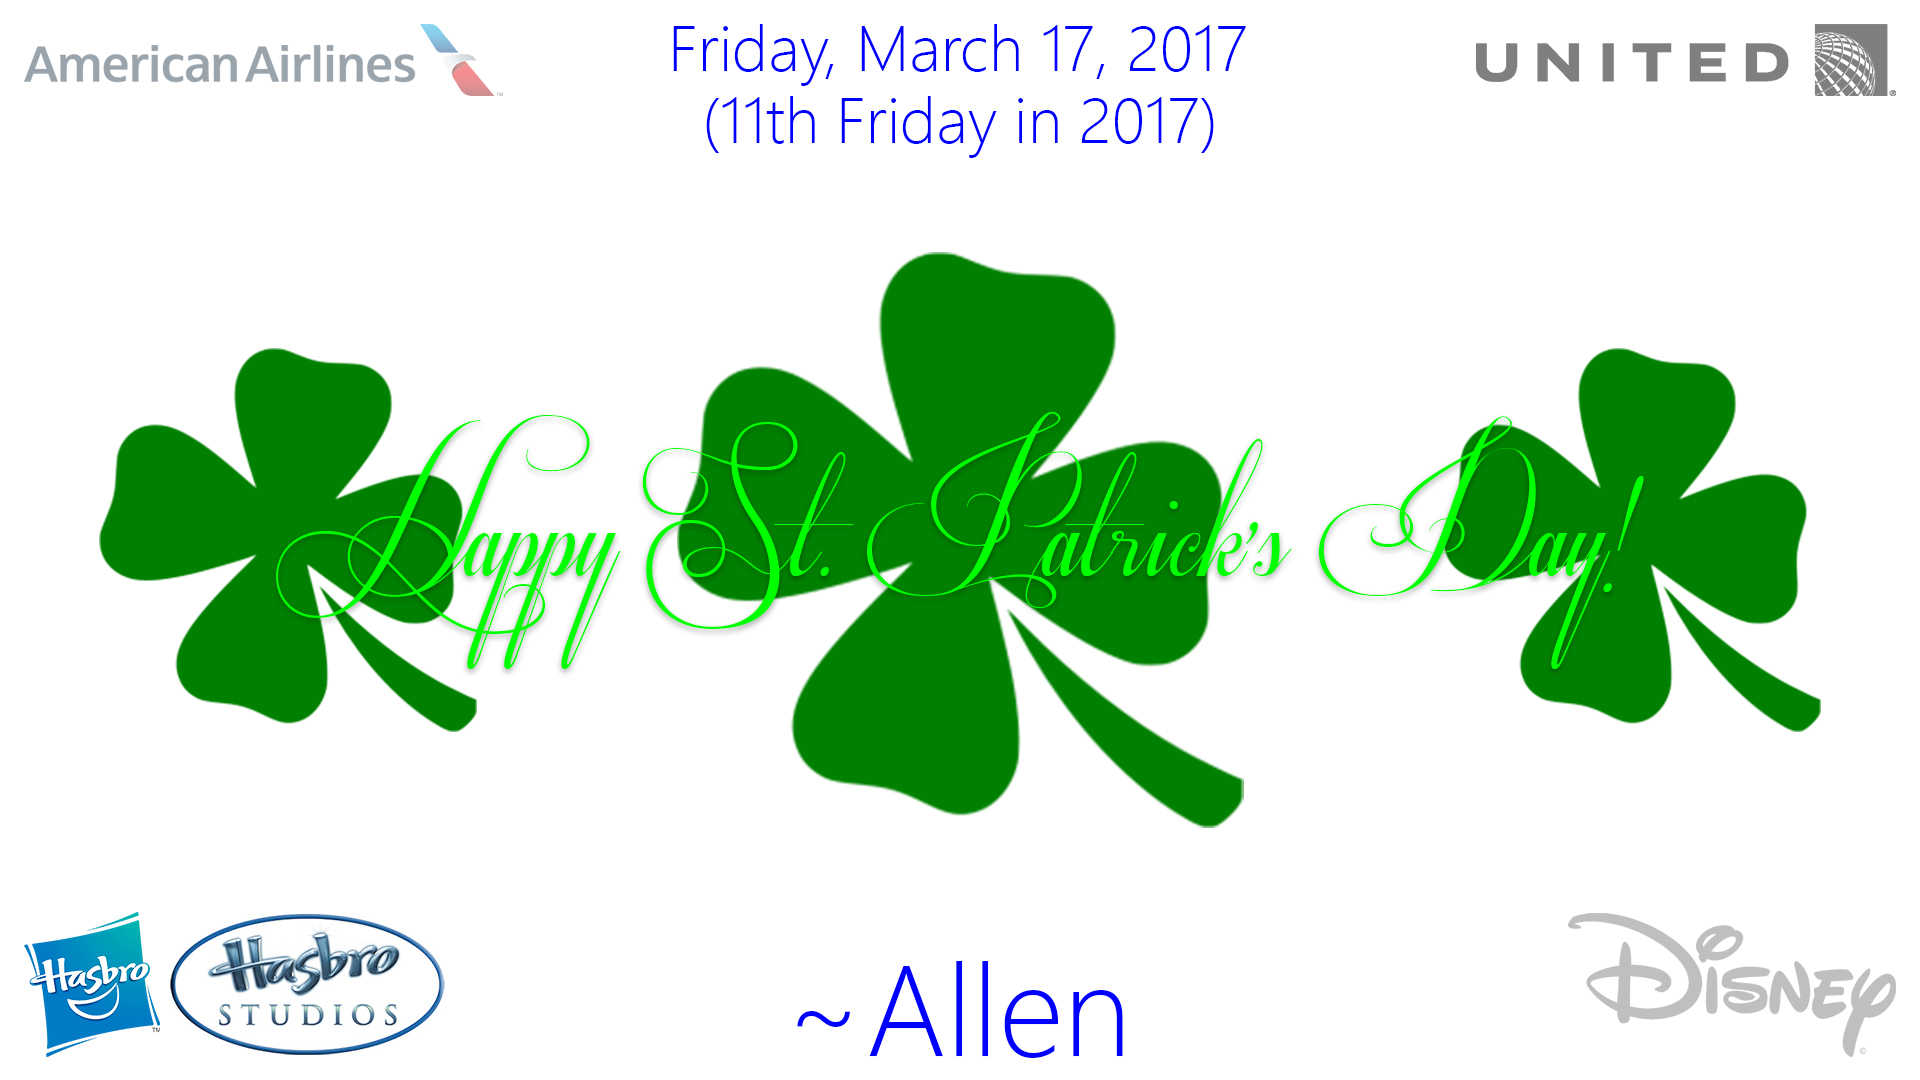 happy_st__patrick_s_day_2017_by_allenacnguyen-db2o17b.jpg